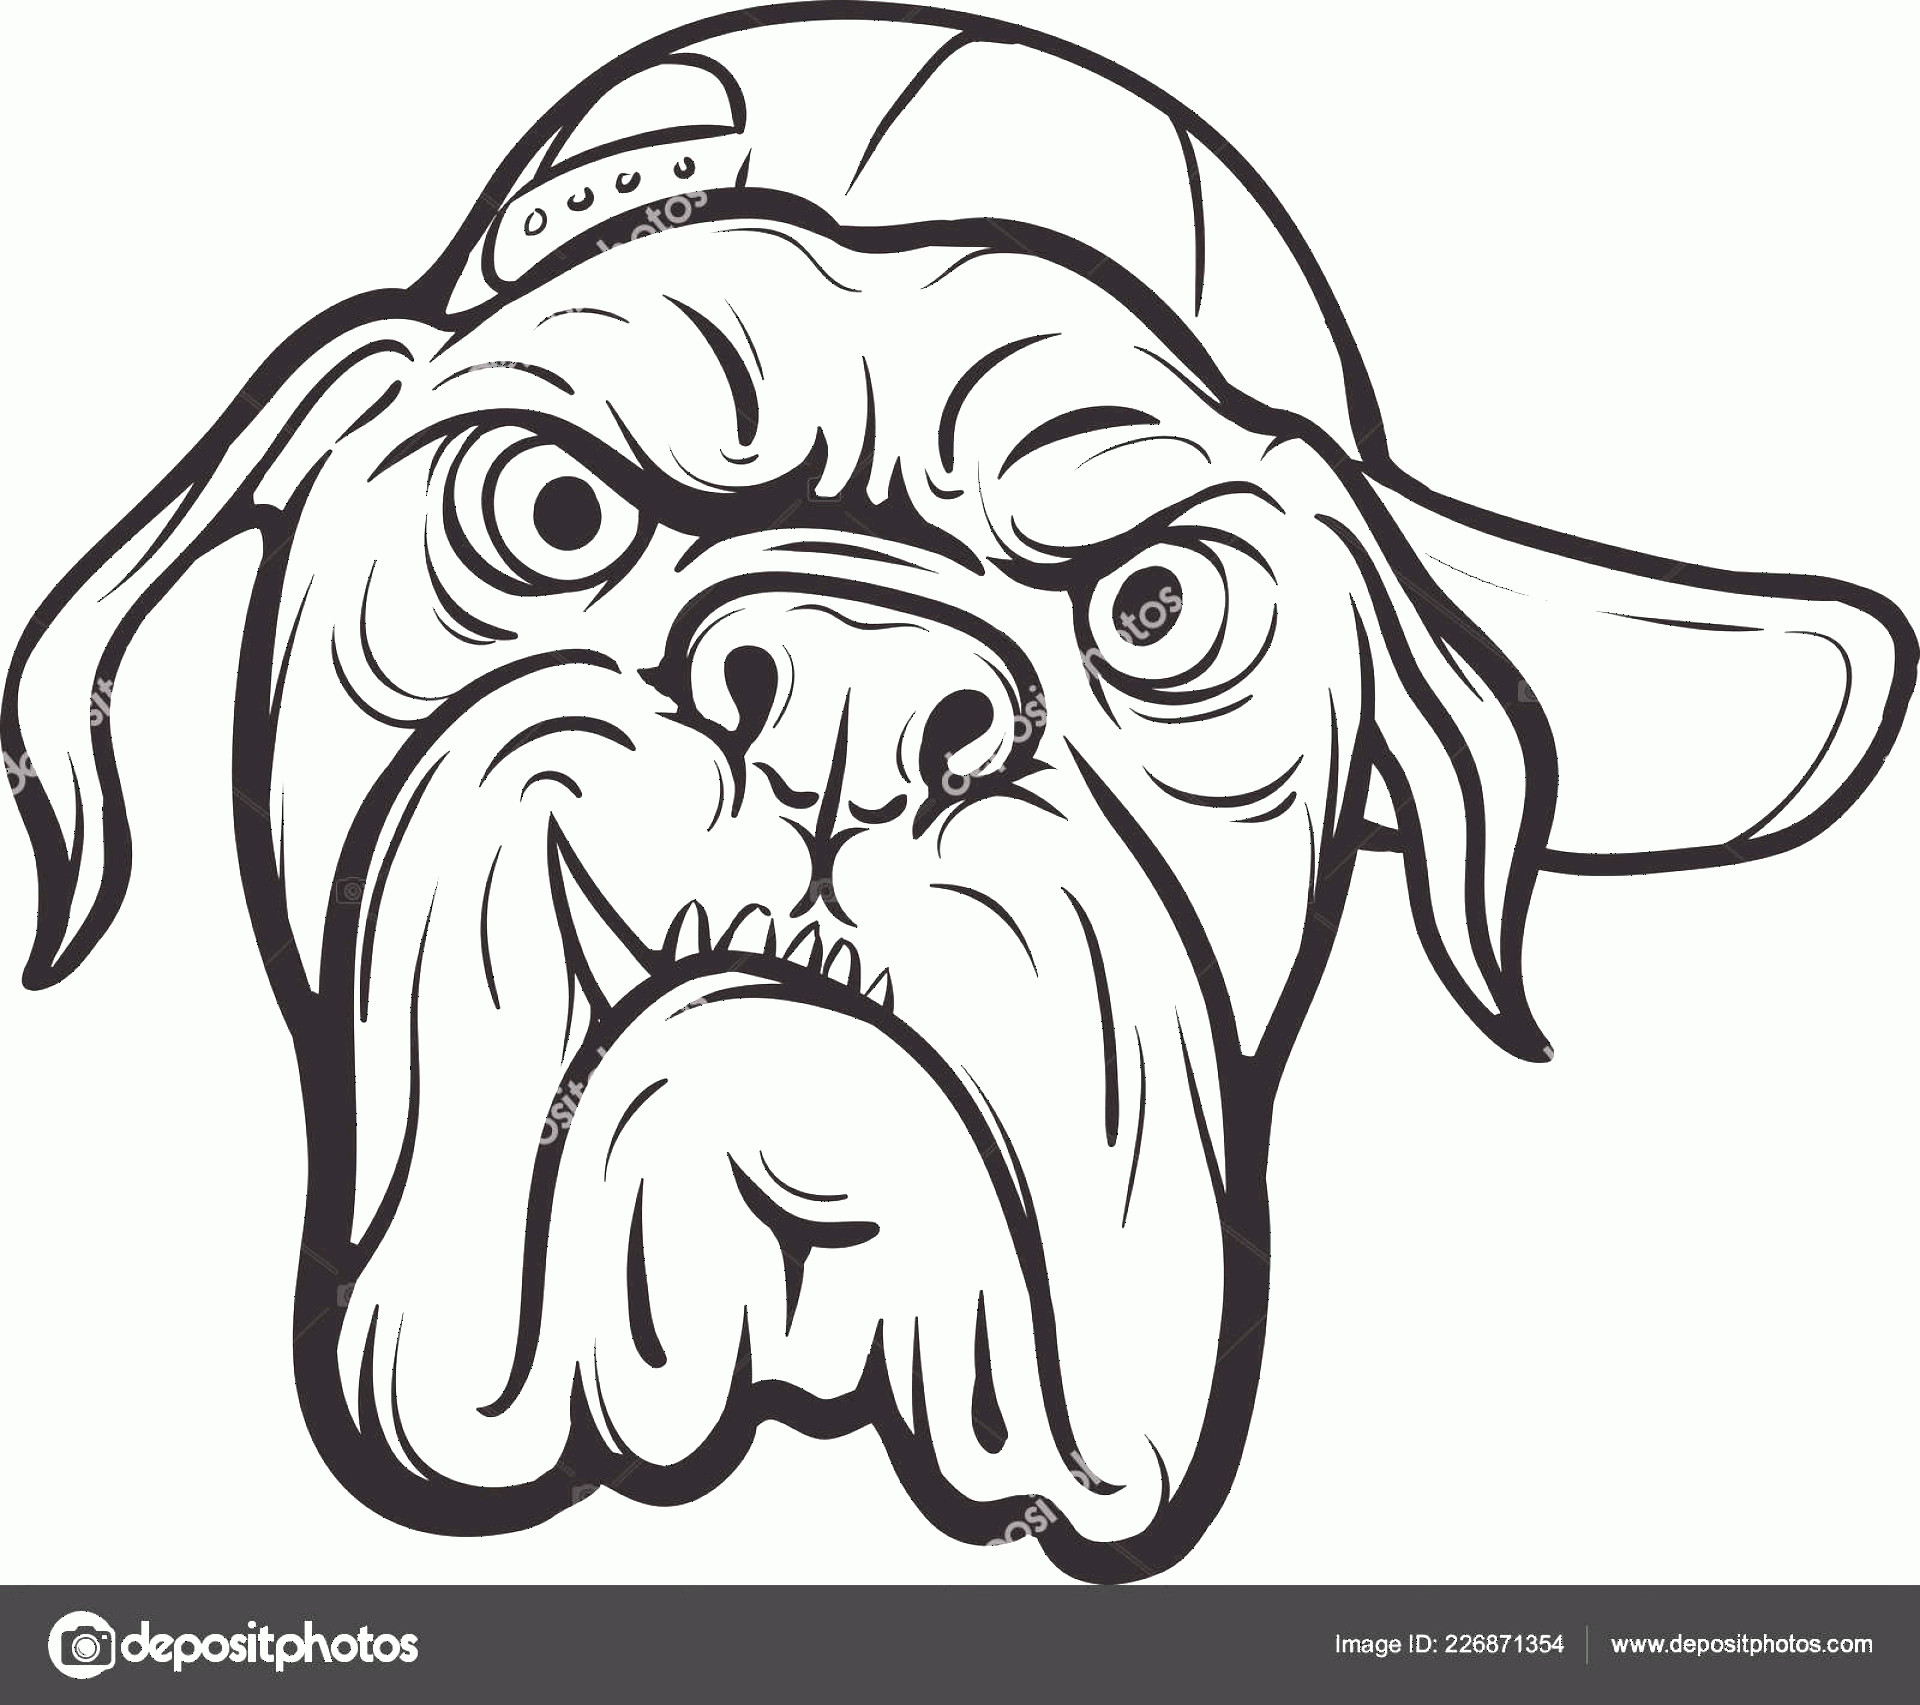 Angry Dog Vector Black And White: Stock Illustration Whiteboard Drawing Angry Dog Face